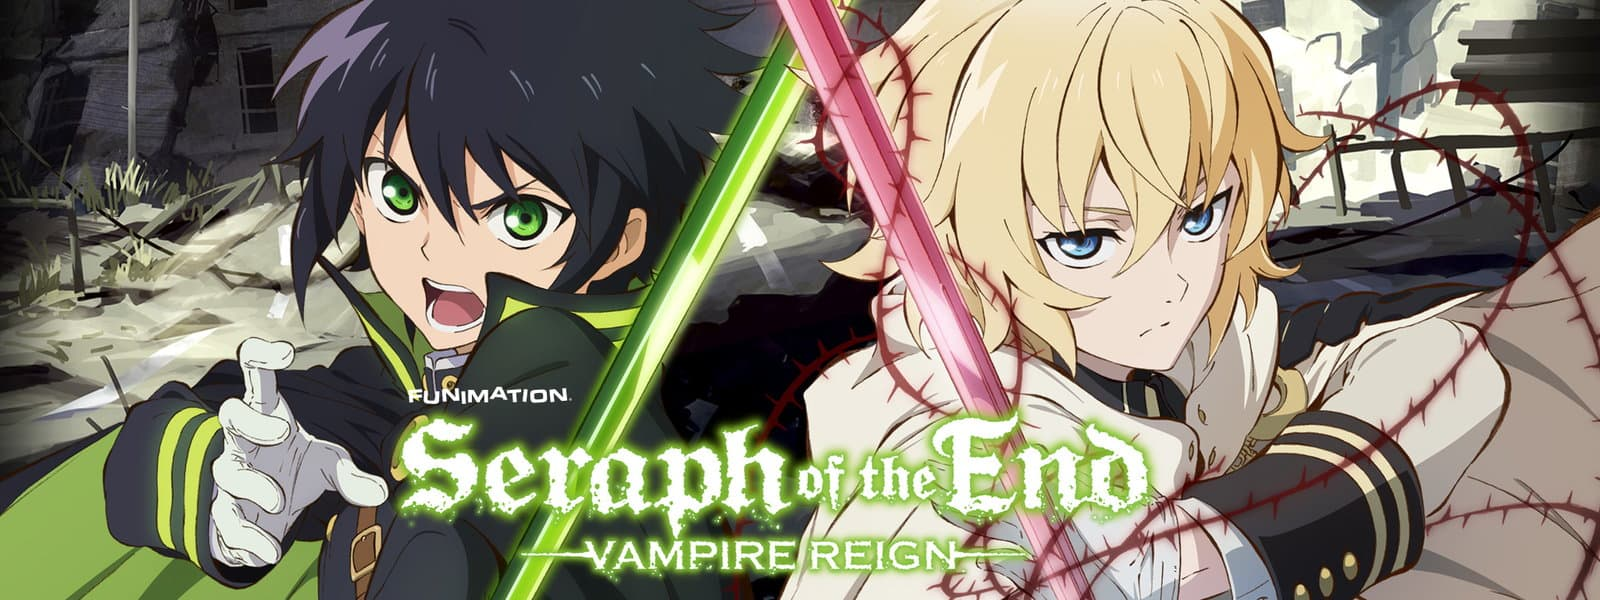 [ANIME] Seraph Of The End (Owari no Seraph)